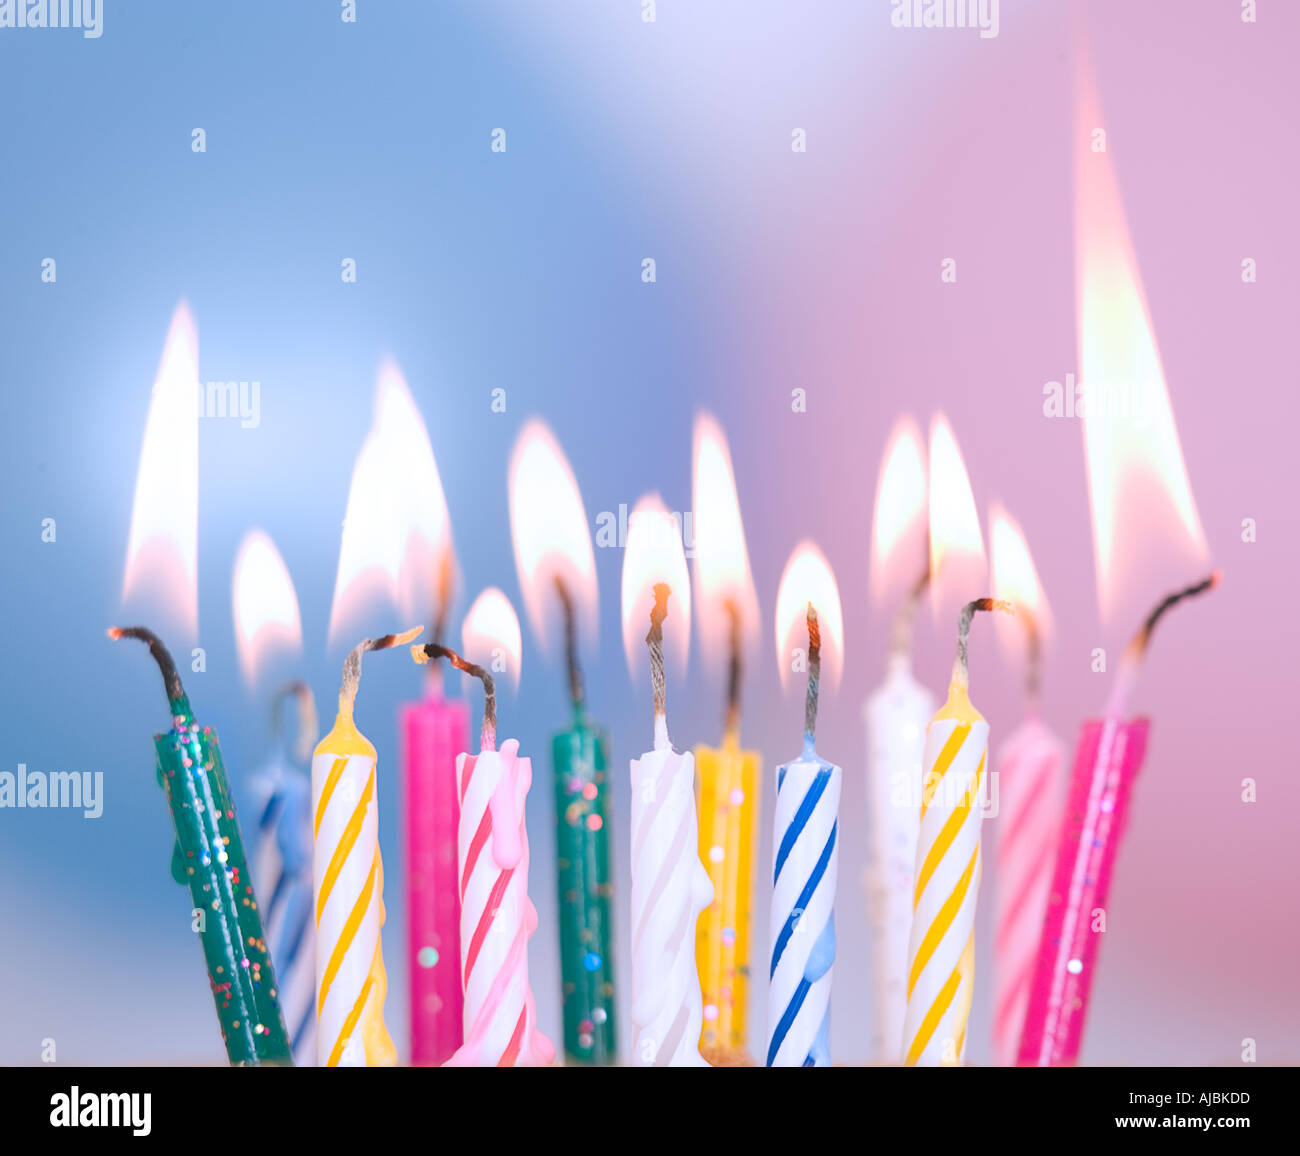 Birthday cake candles and balloons - Stock Image